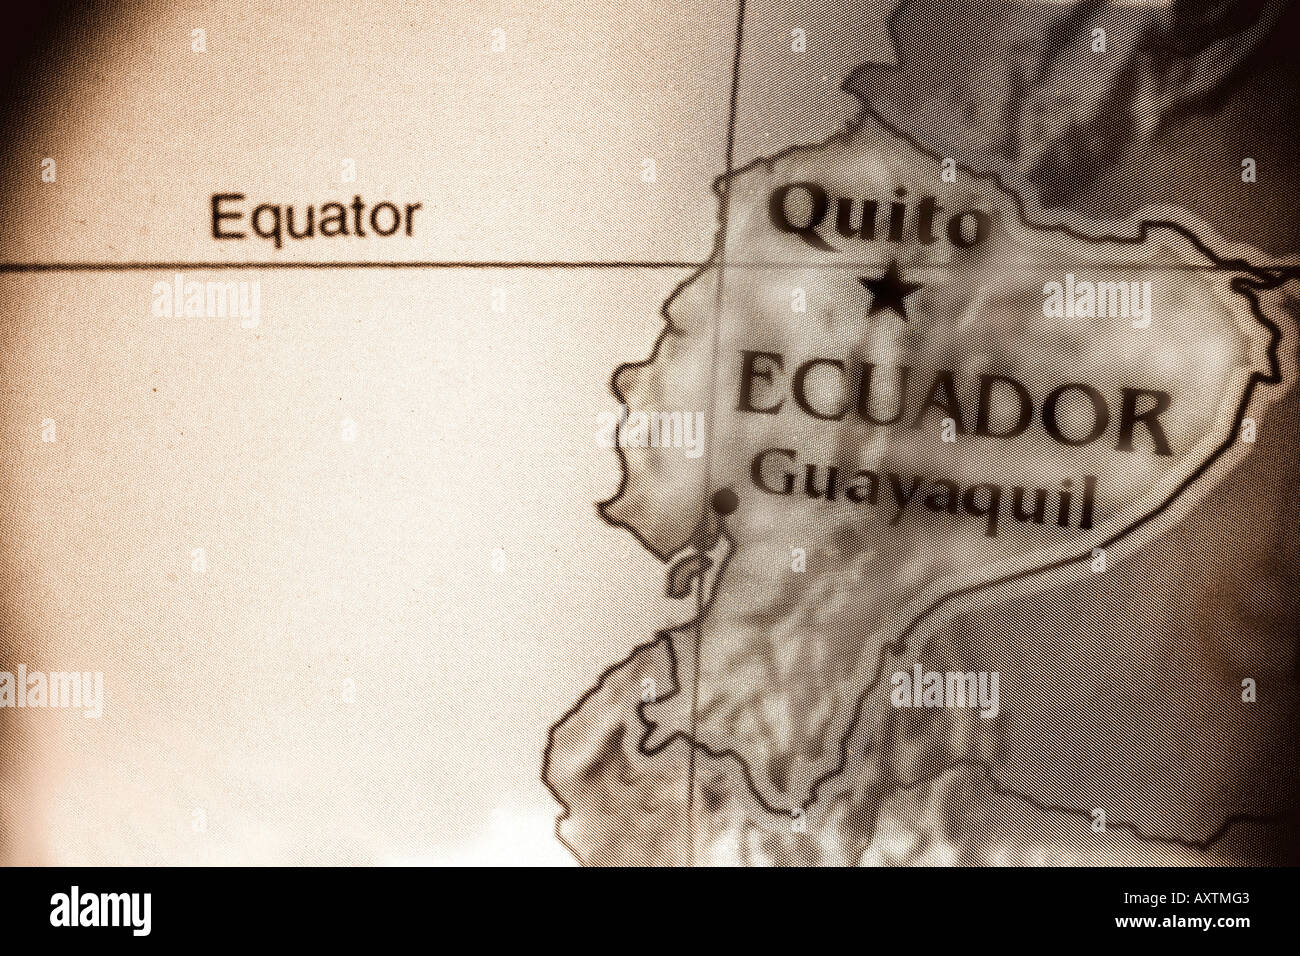 Where Is Ecuador Located On The World Map.Current Map Of The Country Of Ecuador Located In South America Stock